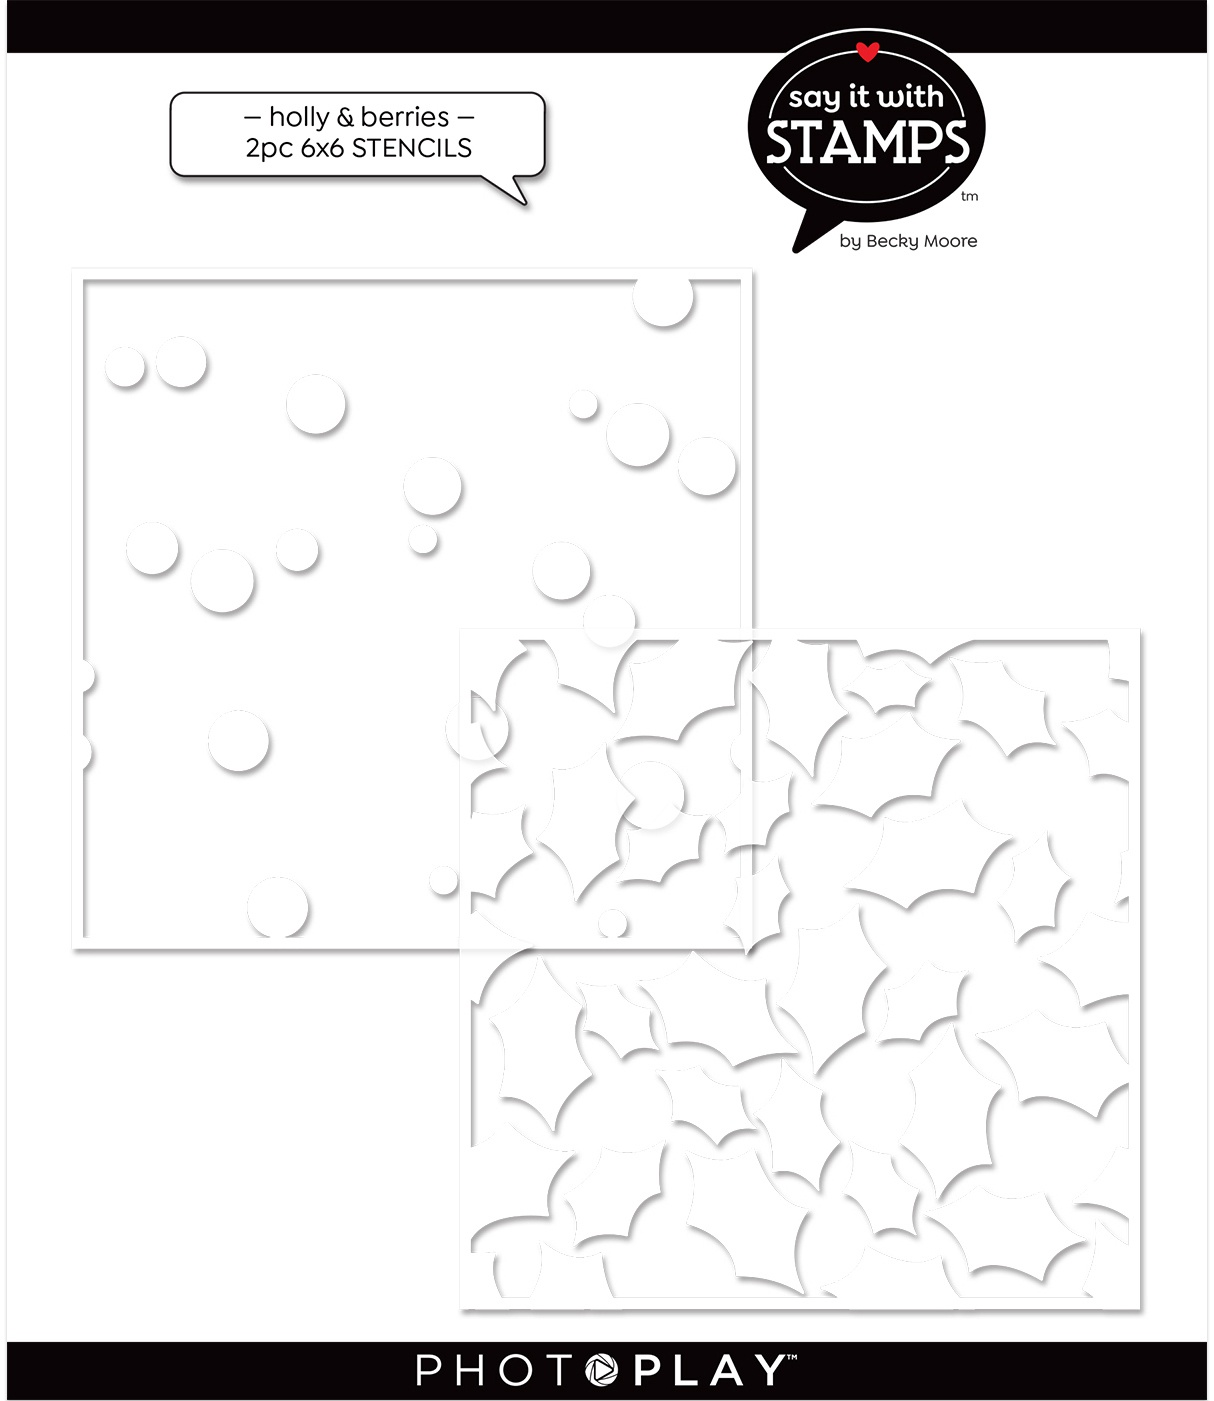 PhotoPlay Say It With Stamps Stencil - Holly & Berries, 2 Layer